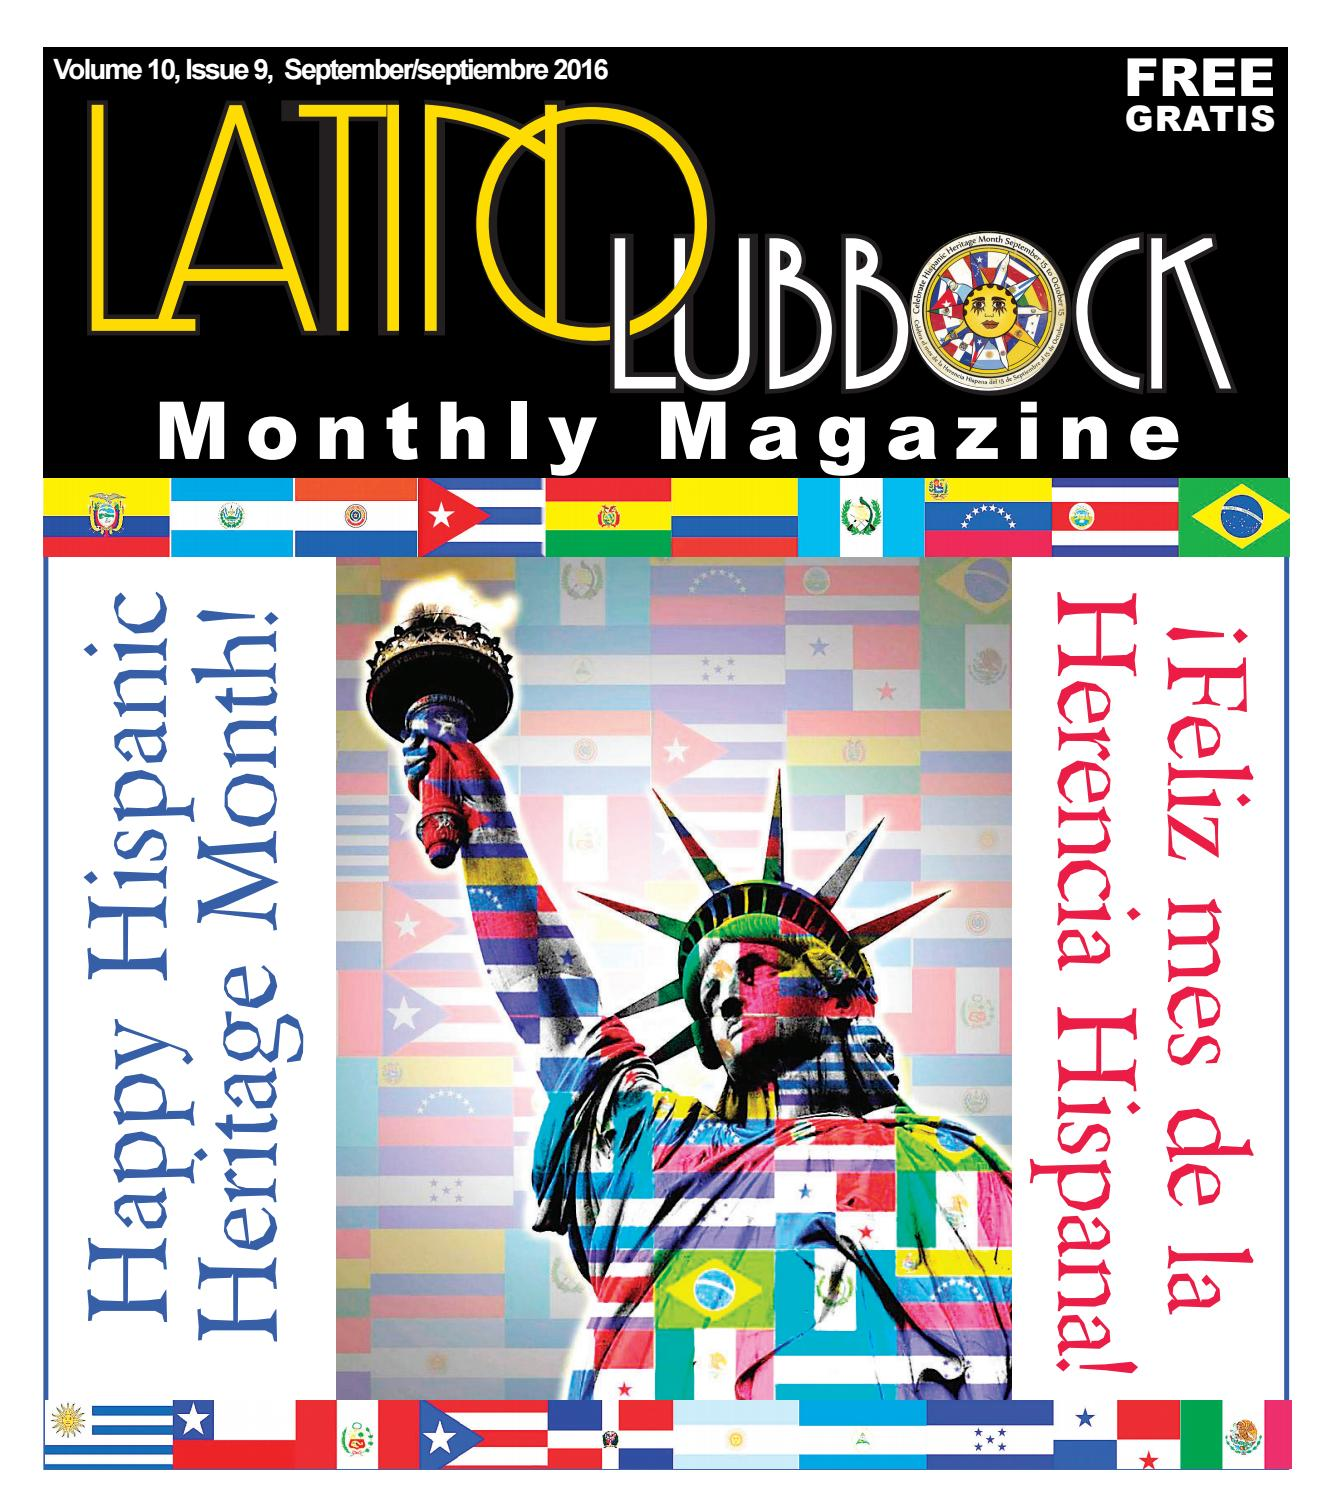 September Latino Lubbock Vol 10 Issue 9 by Christy Martinez-Garcia ...